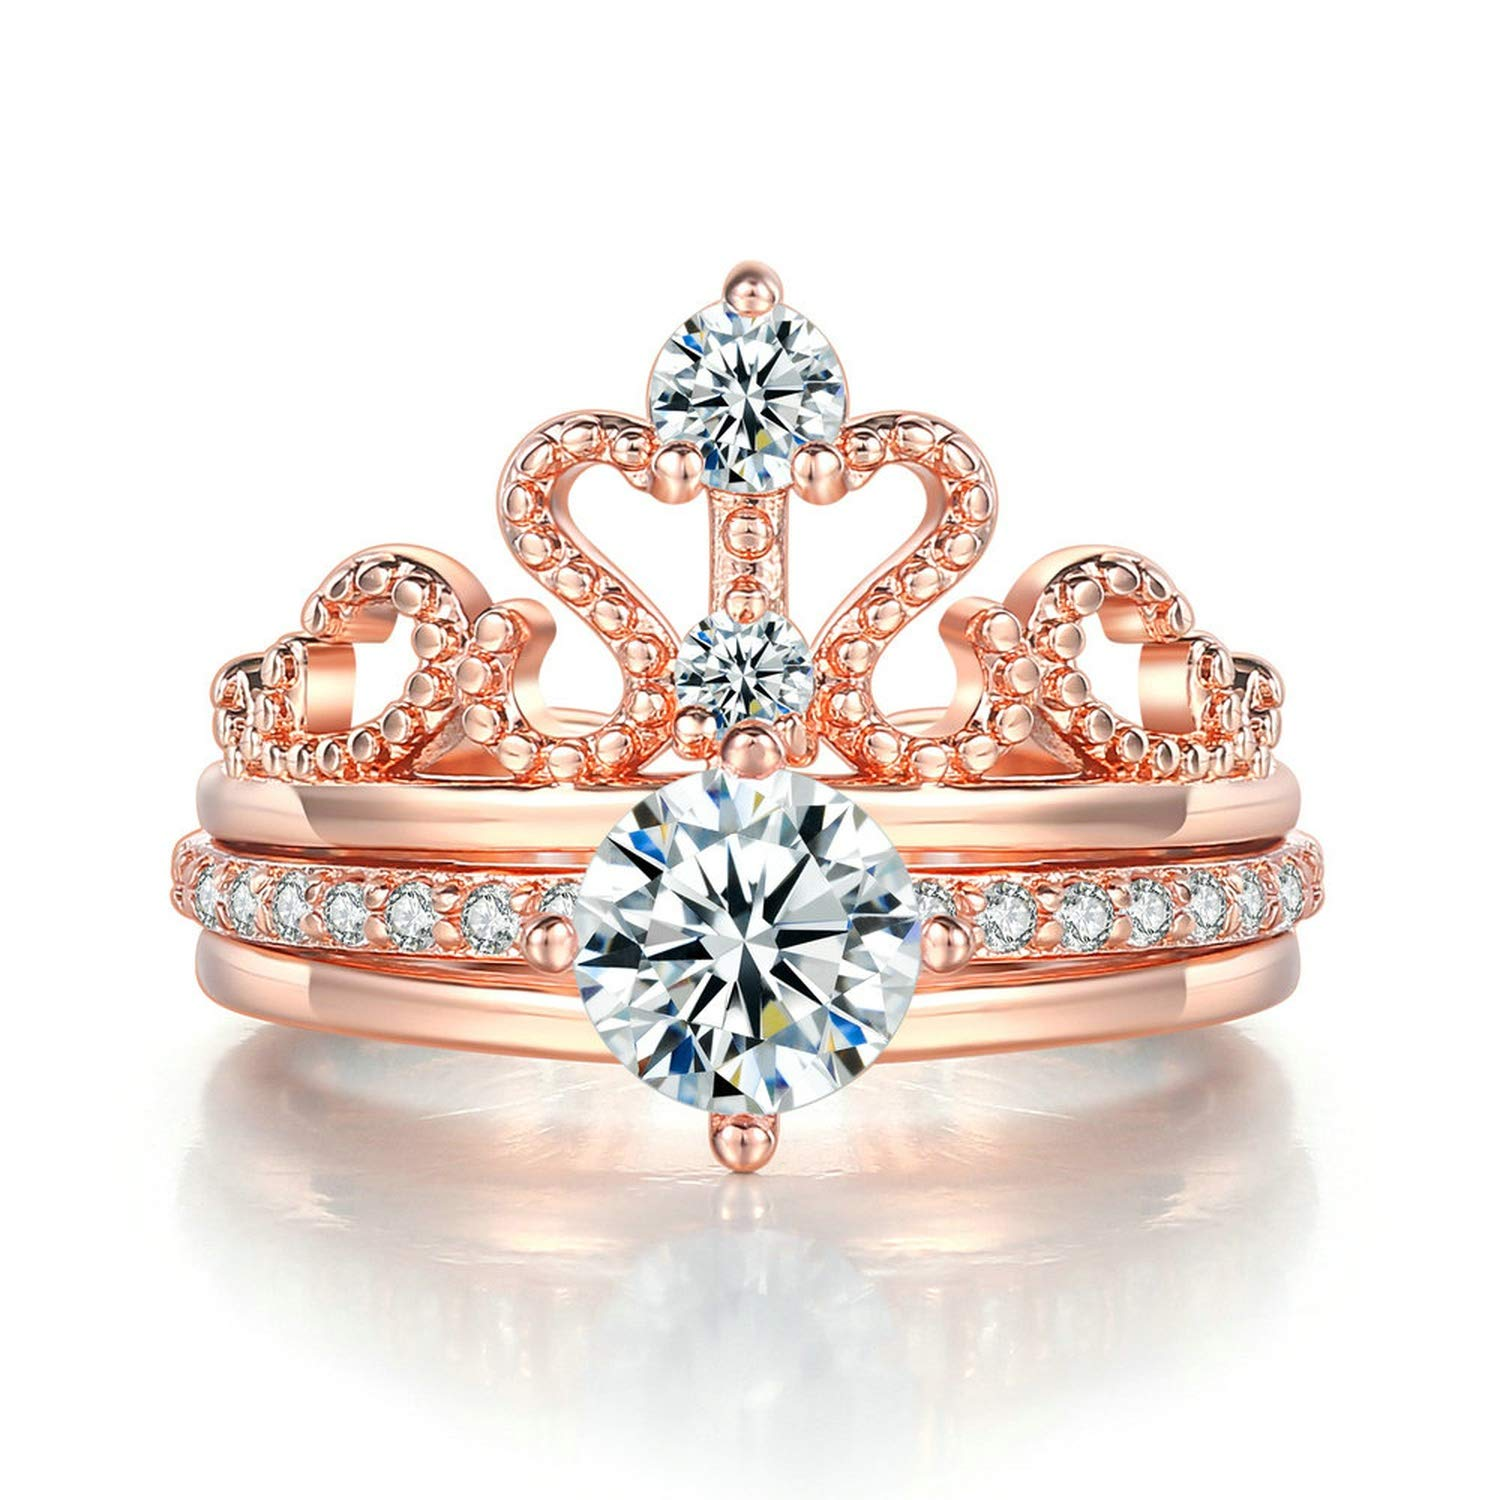 Candy-OU Ring for Women Elegant Luxury Cubic Zirconia Queen Crown Engagement Wedding Ring Set Jewelry R350-2